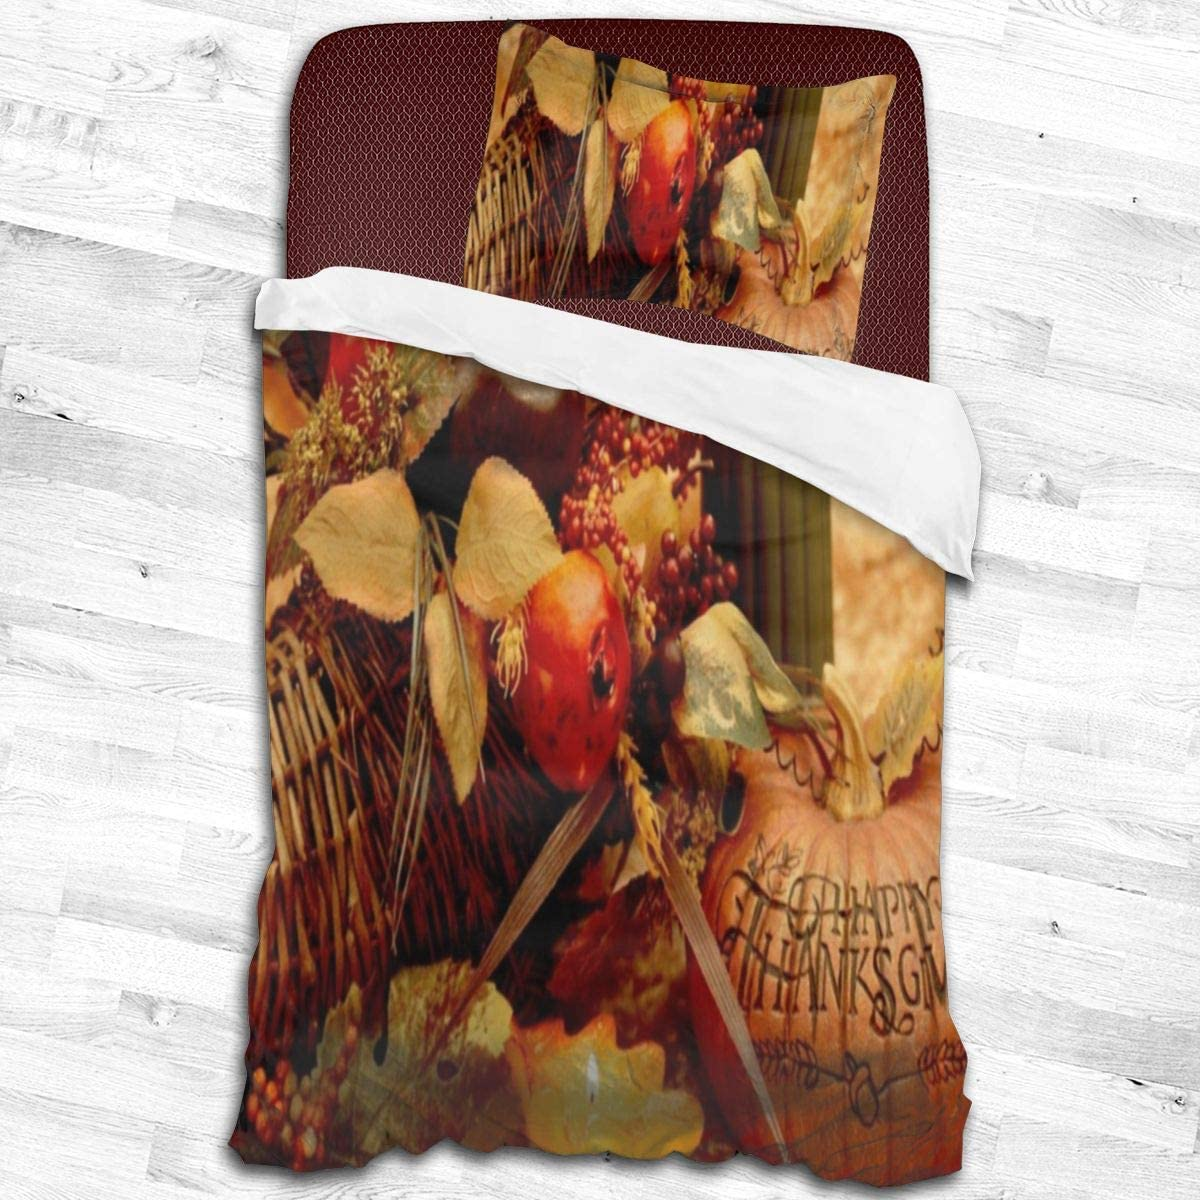 Baliboon Boston Mall Bed Sheet Set Thanksgiving Bedding Sheets Skin- In a popularity Harvest